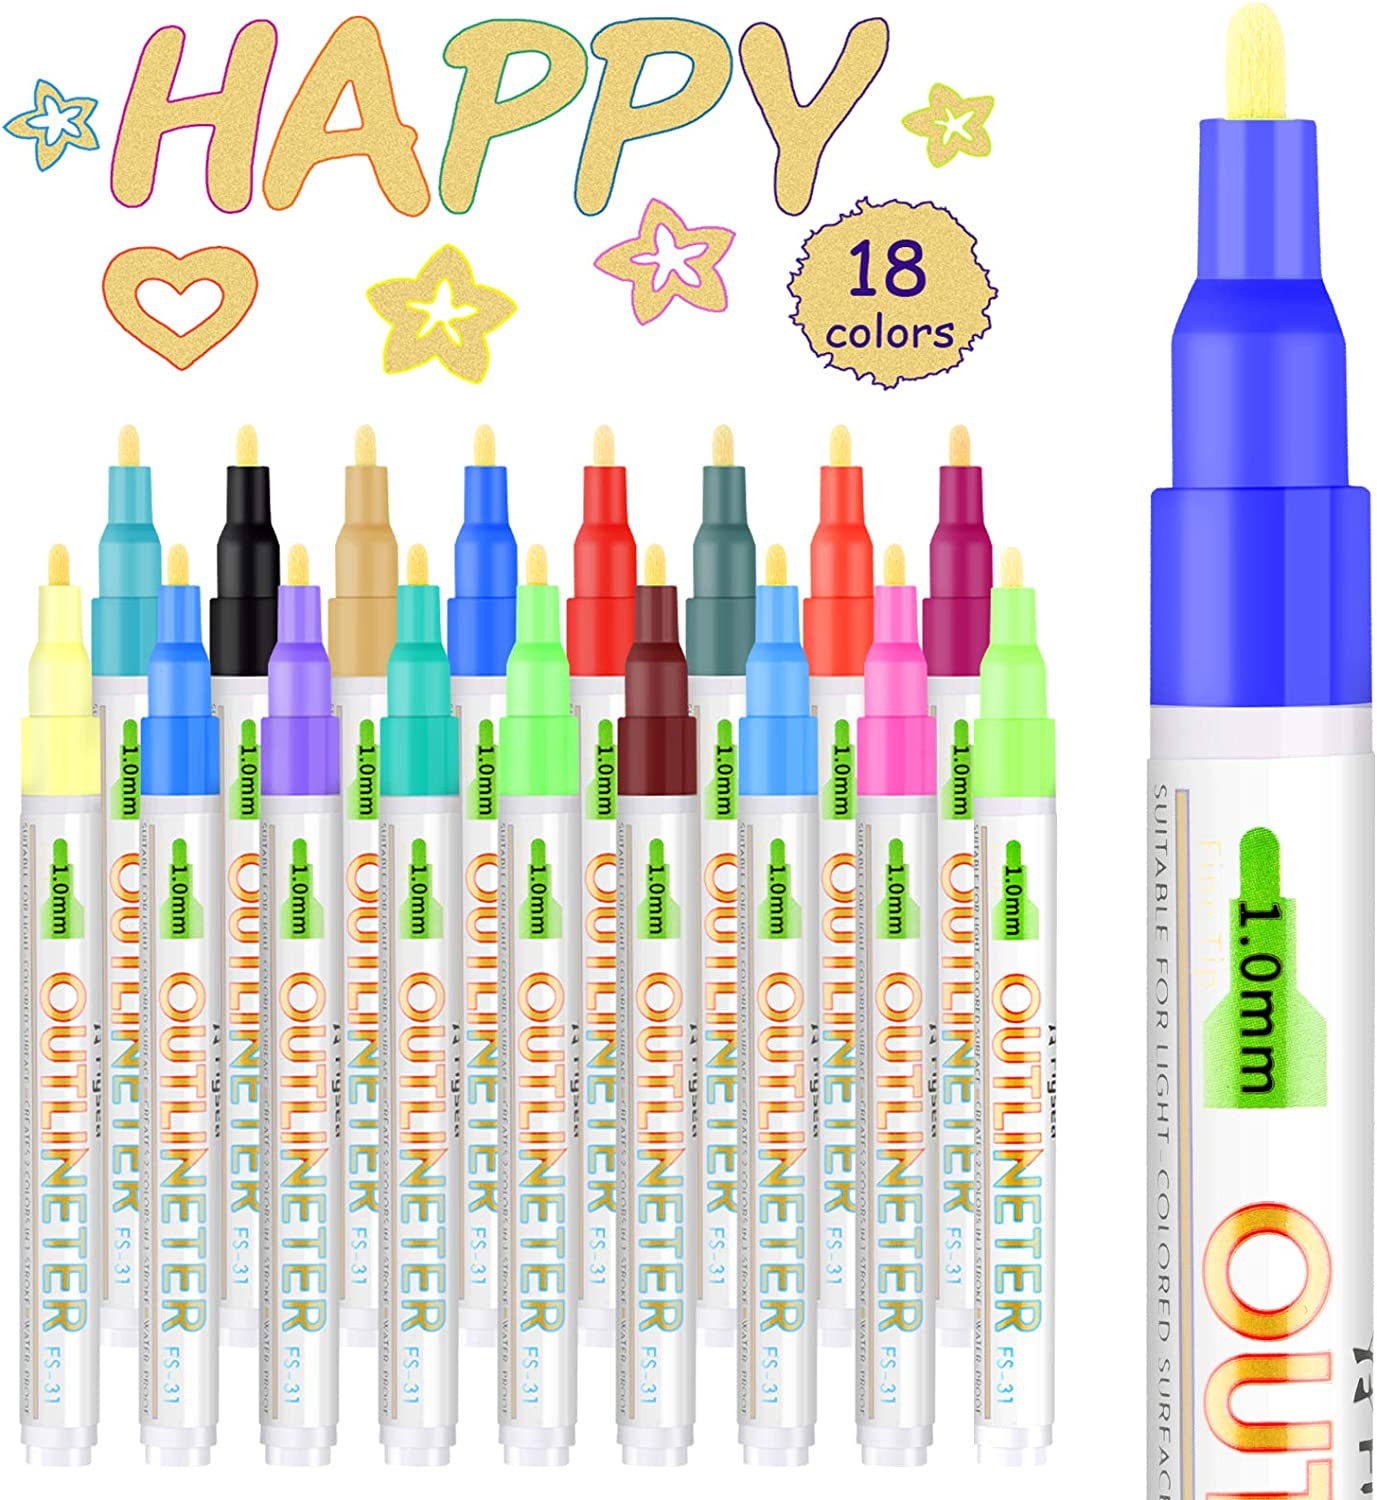 Double Line Markers Outline Pens,18 Colors Self Outline Metallic Markers Dazzle Shimmer Glitter Pens Permanent Painting for Easter Egg Decor, Gift Card, DIY Photo Album, Scrapbook Crafts, Wood, Glass